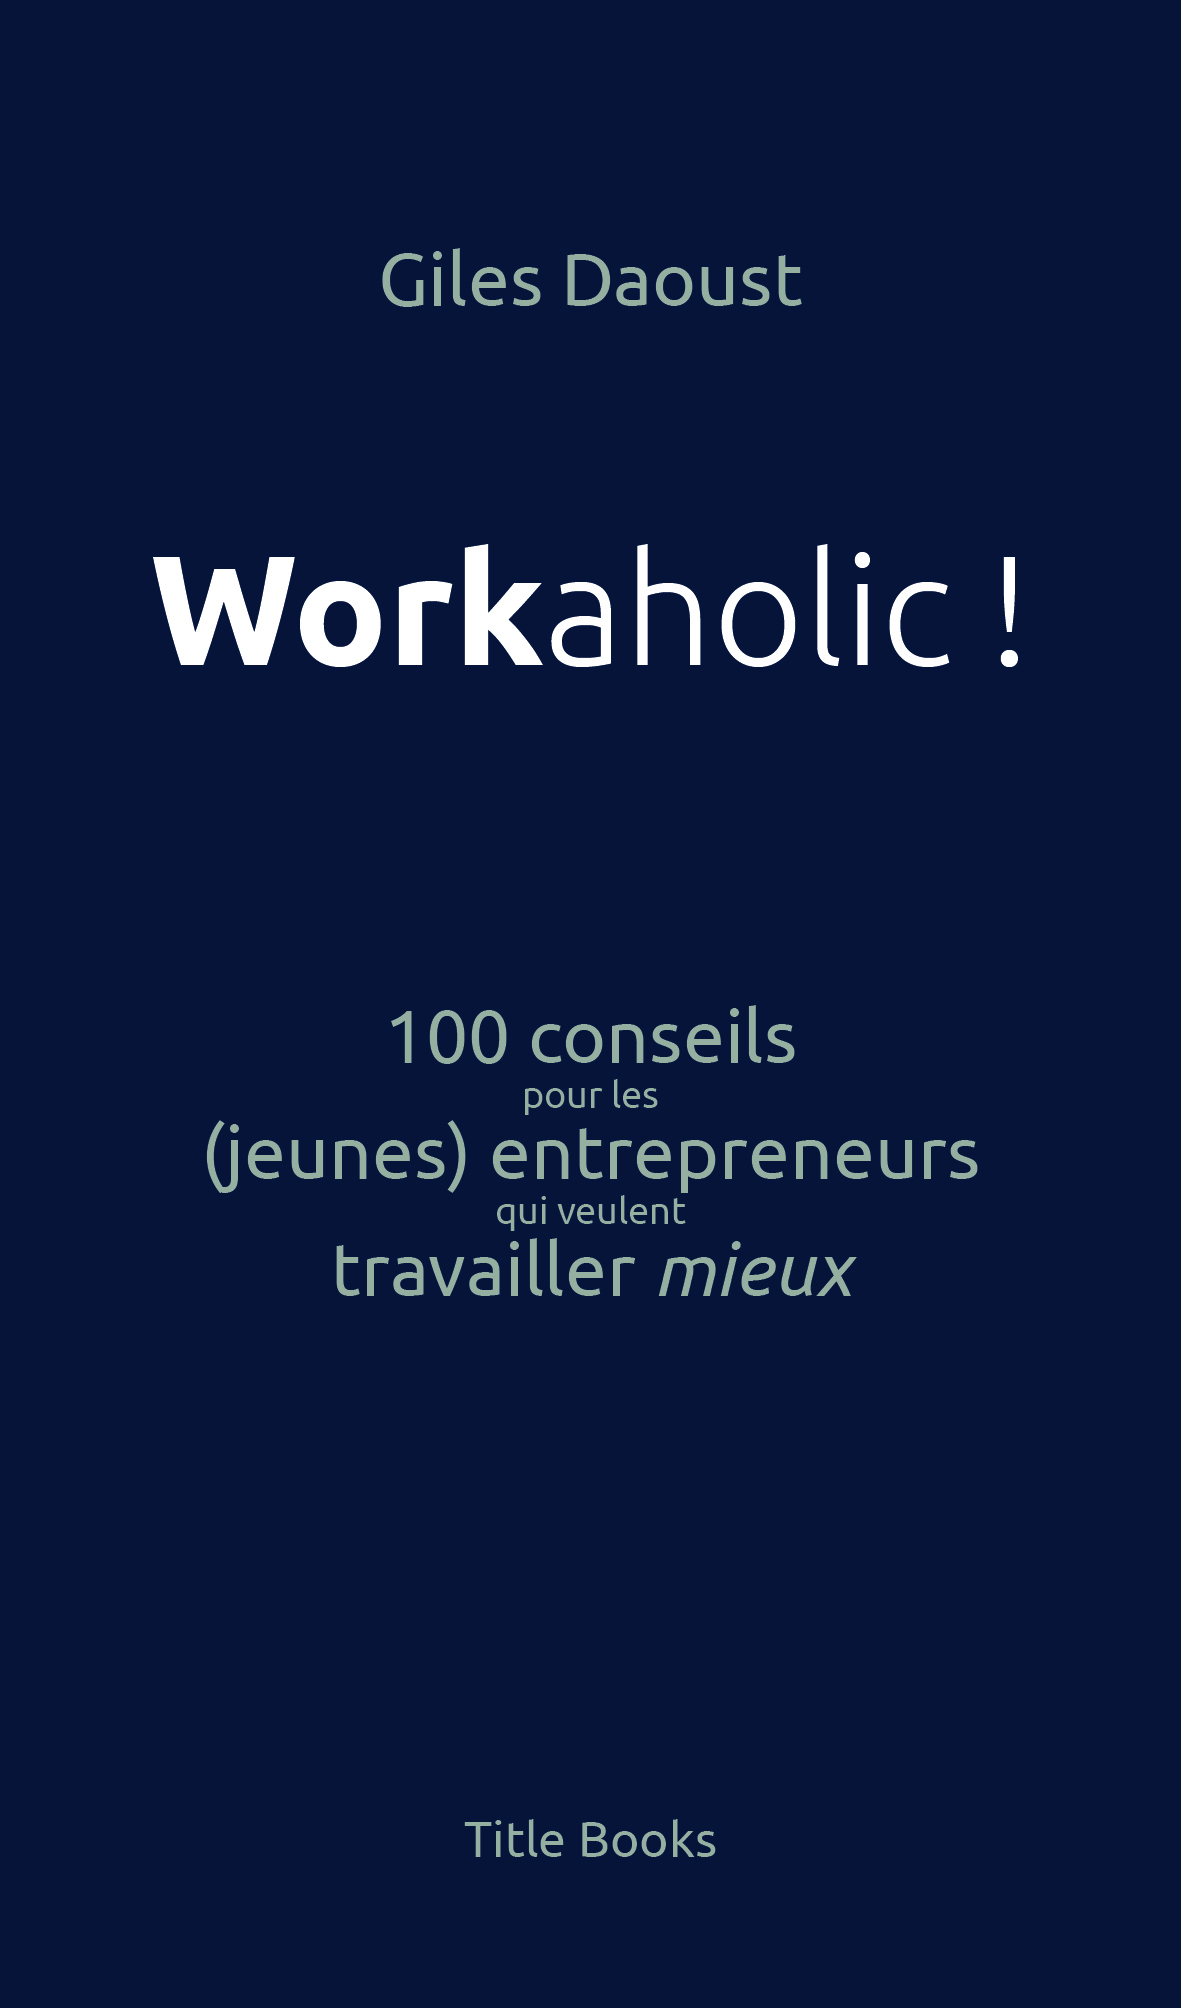 Workaholic_Cover1